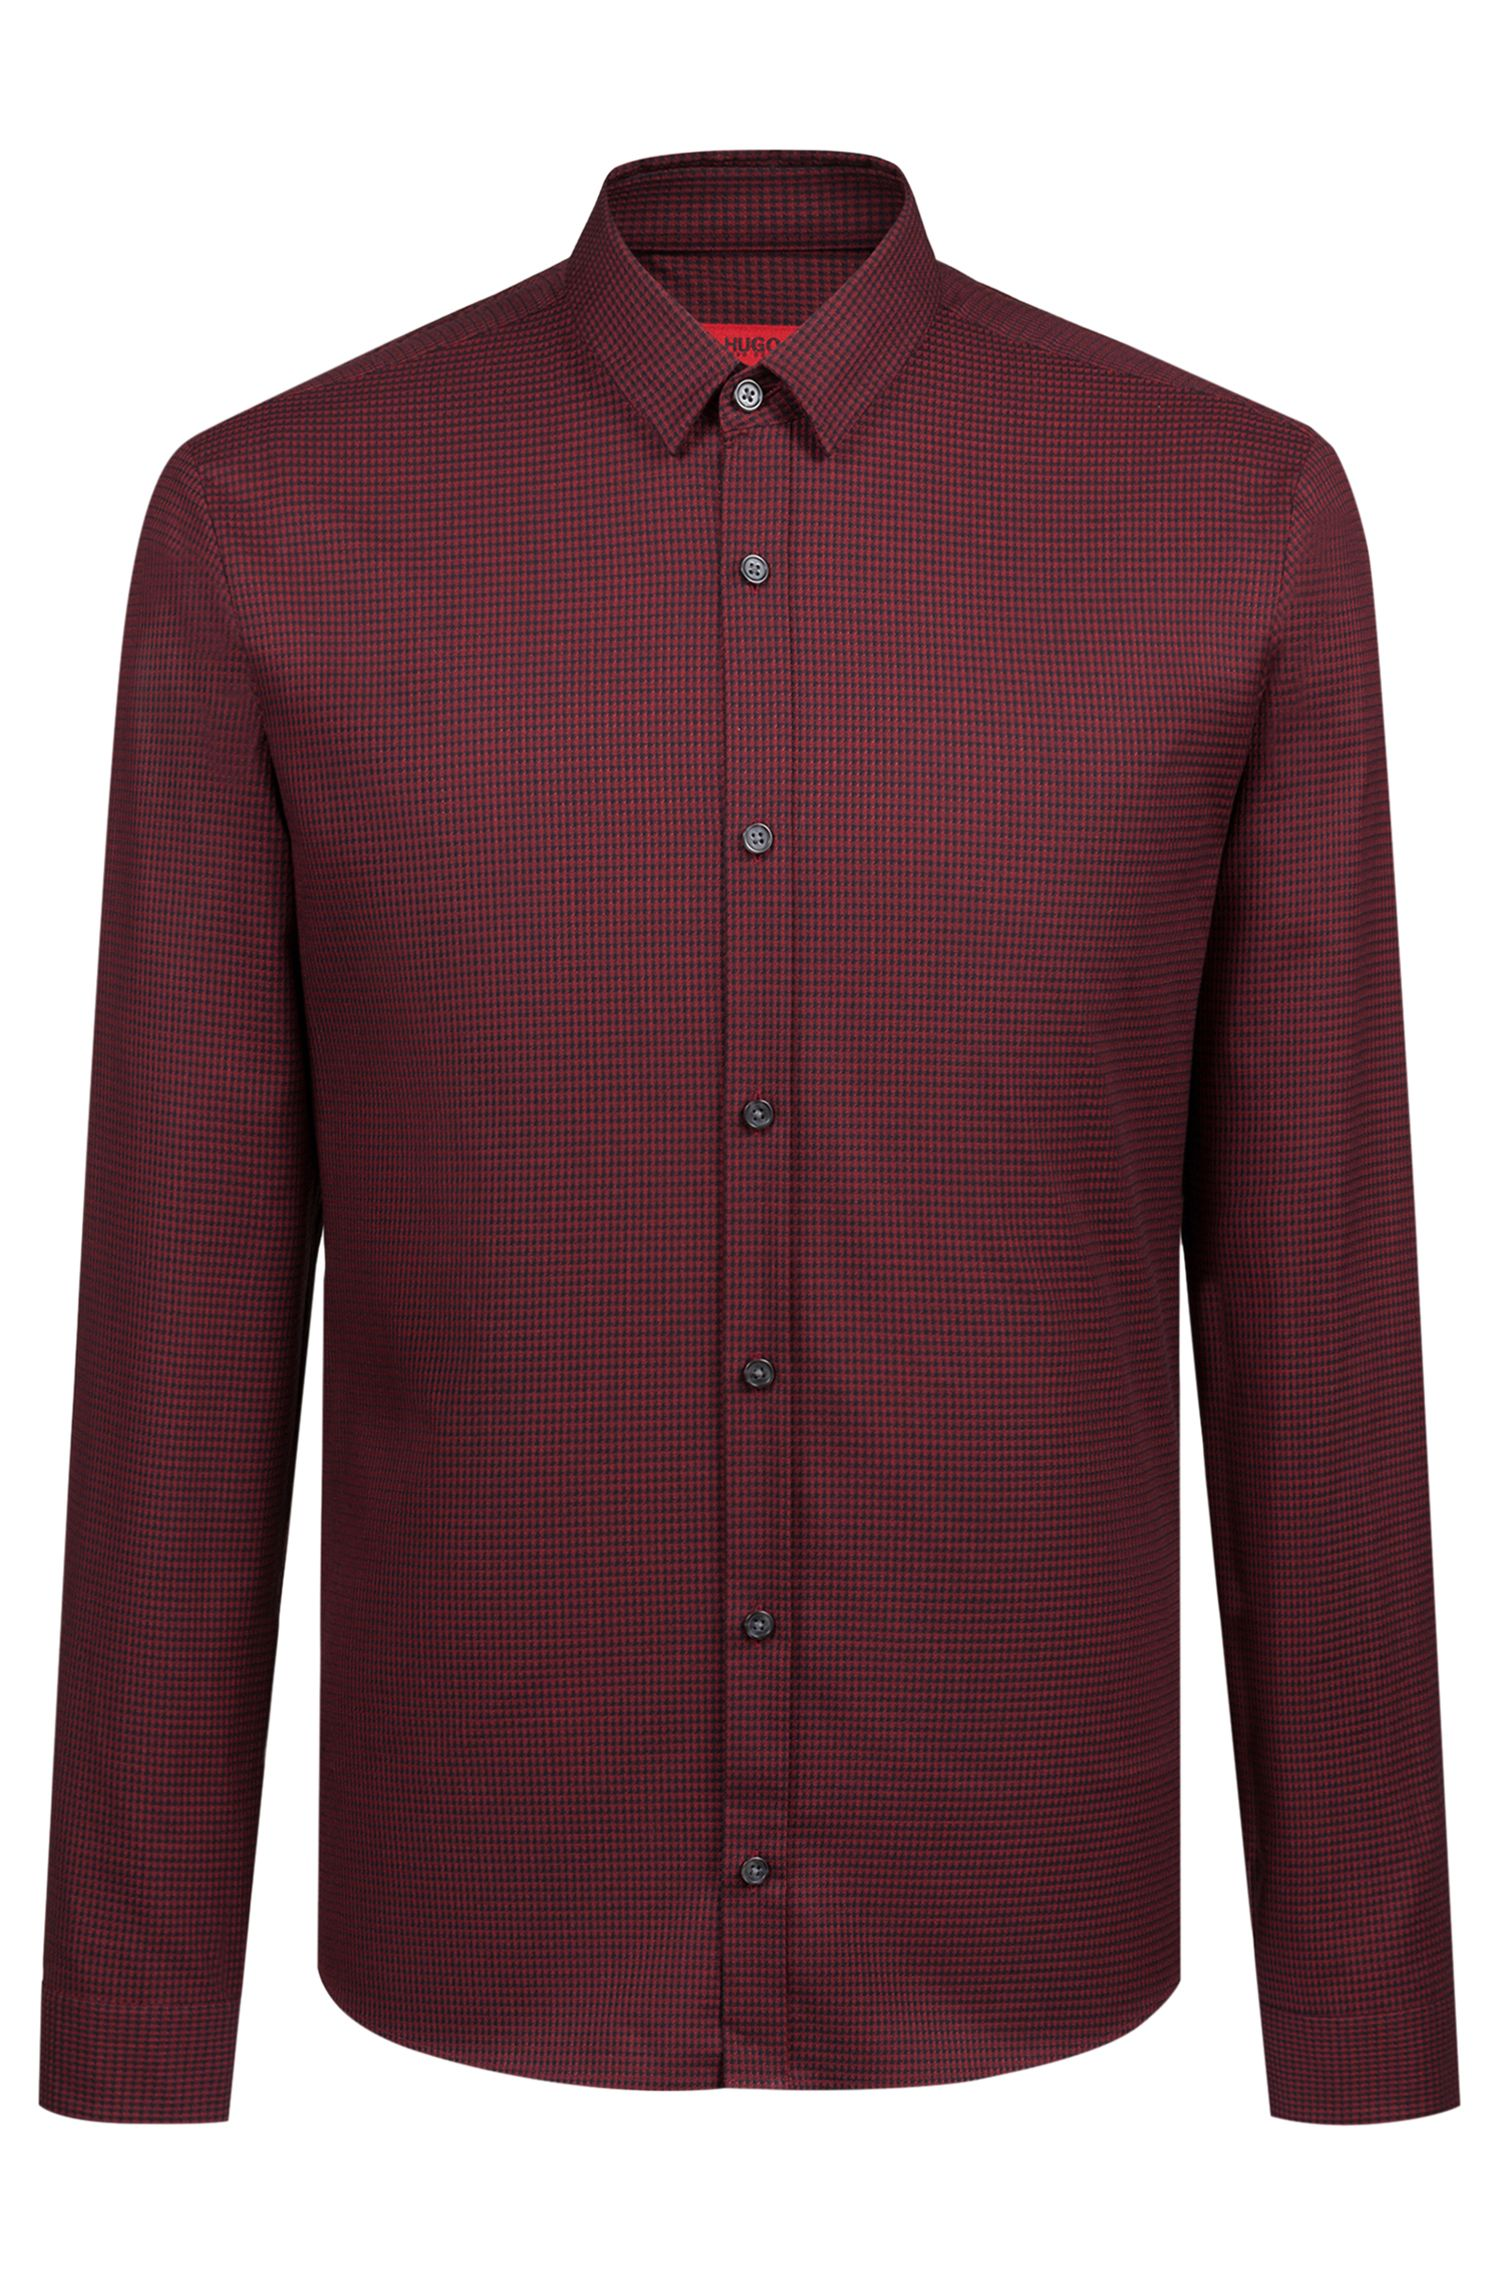 Extra-slim-fit shirt in houndstooth cotton tweed